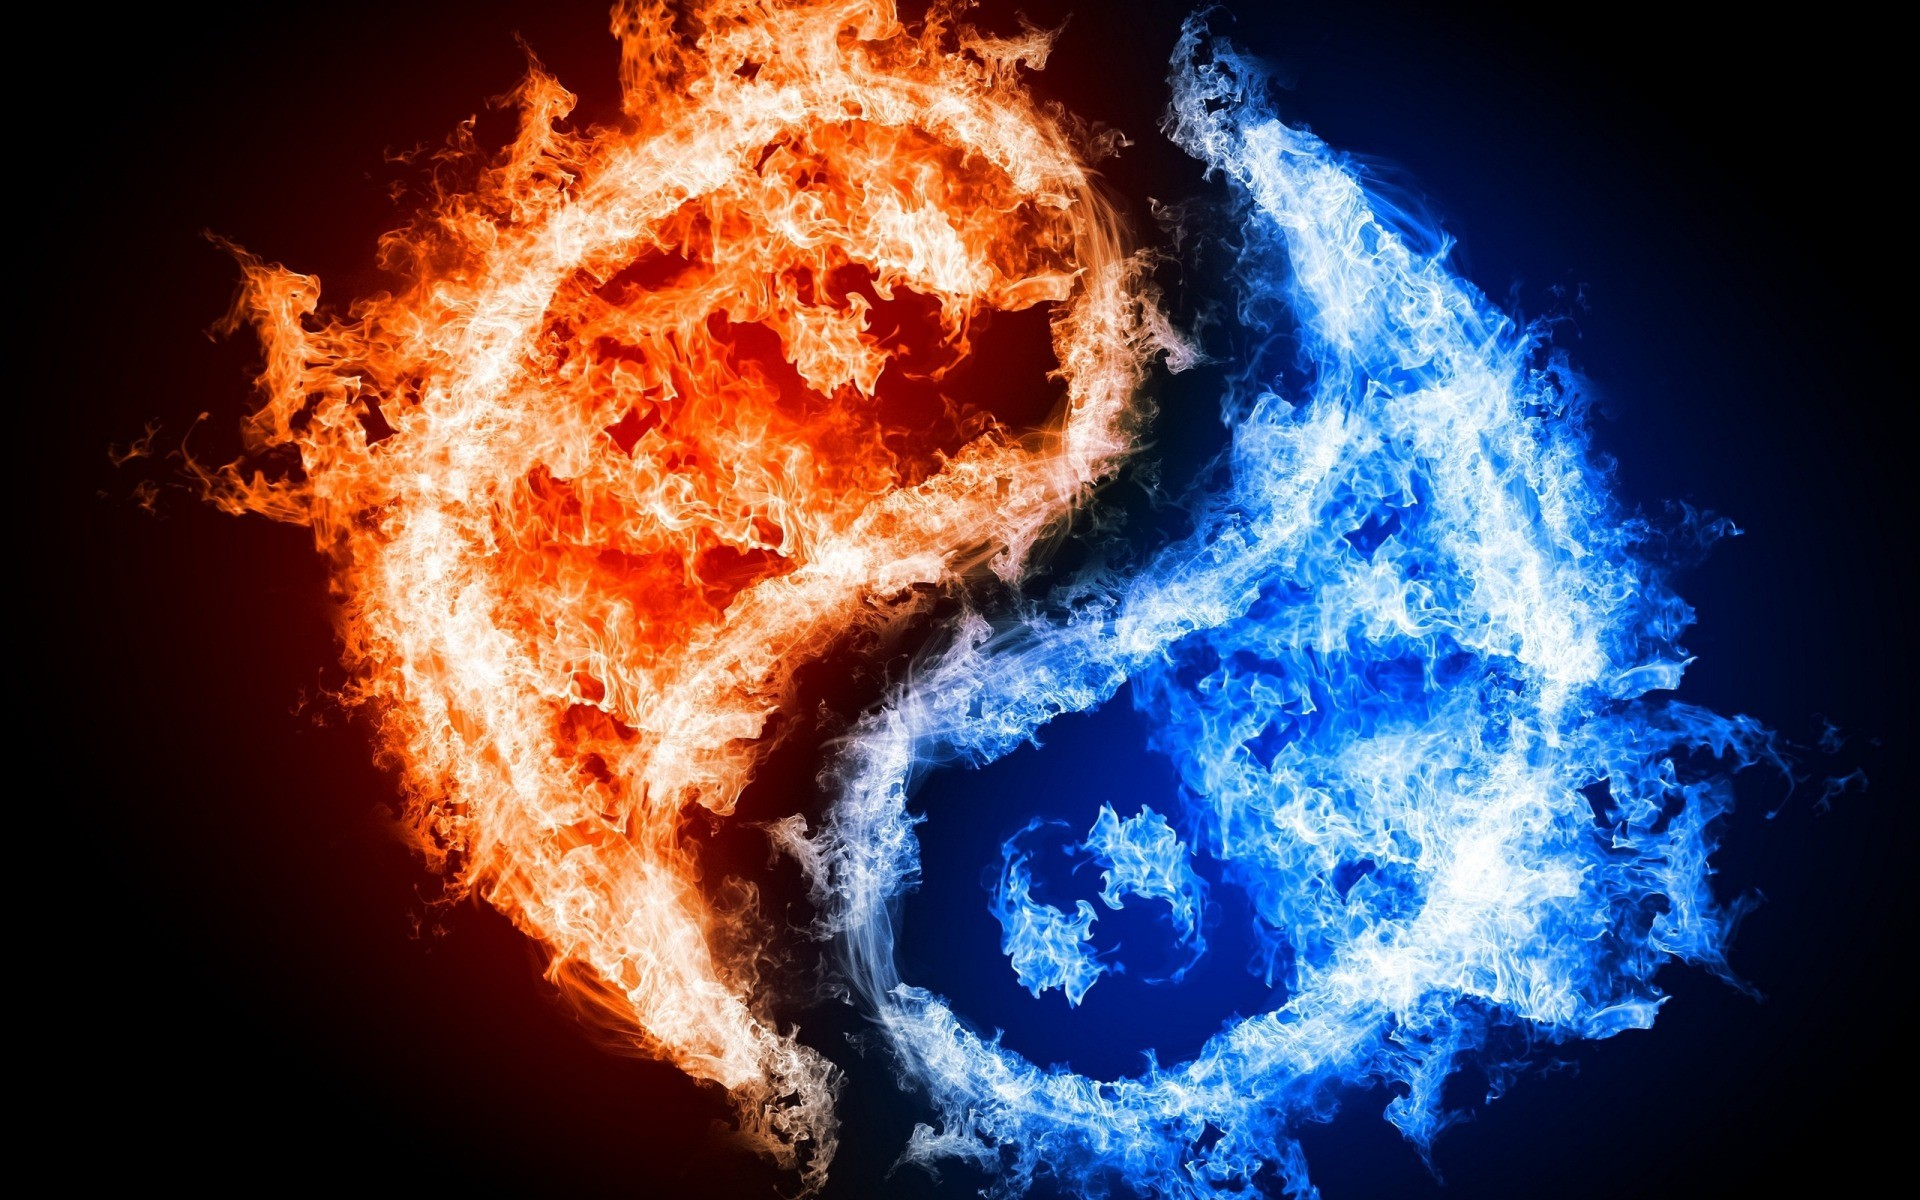 Blue and Red Fire Wallpaper, wallpaper, Blue and Red Fire Wallpaper hd .